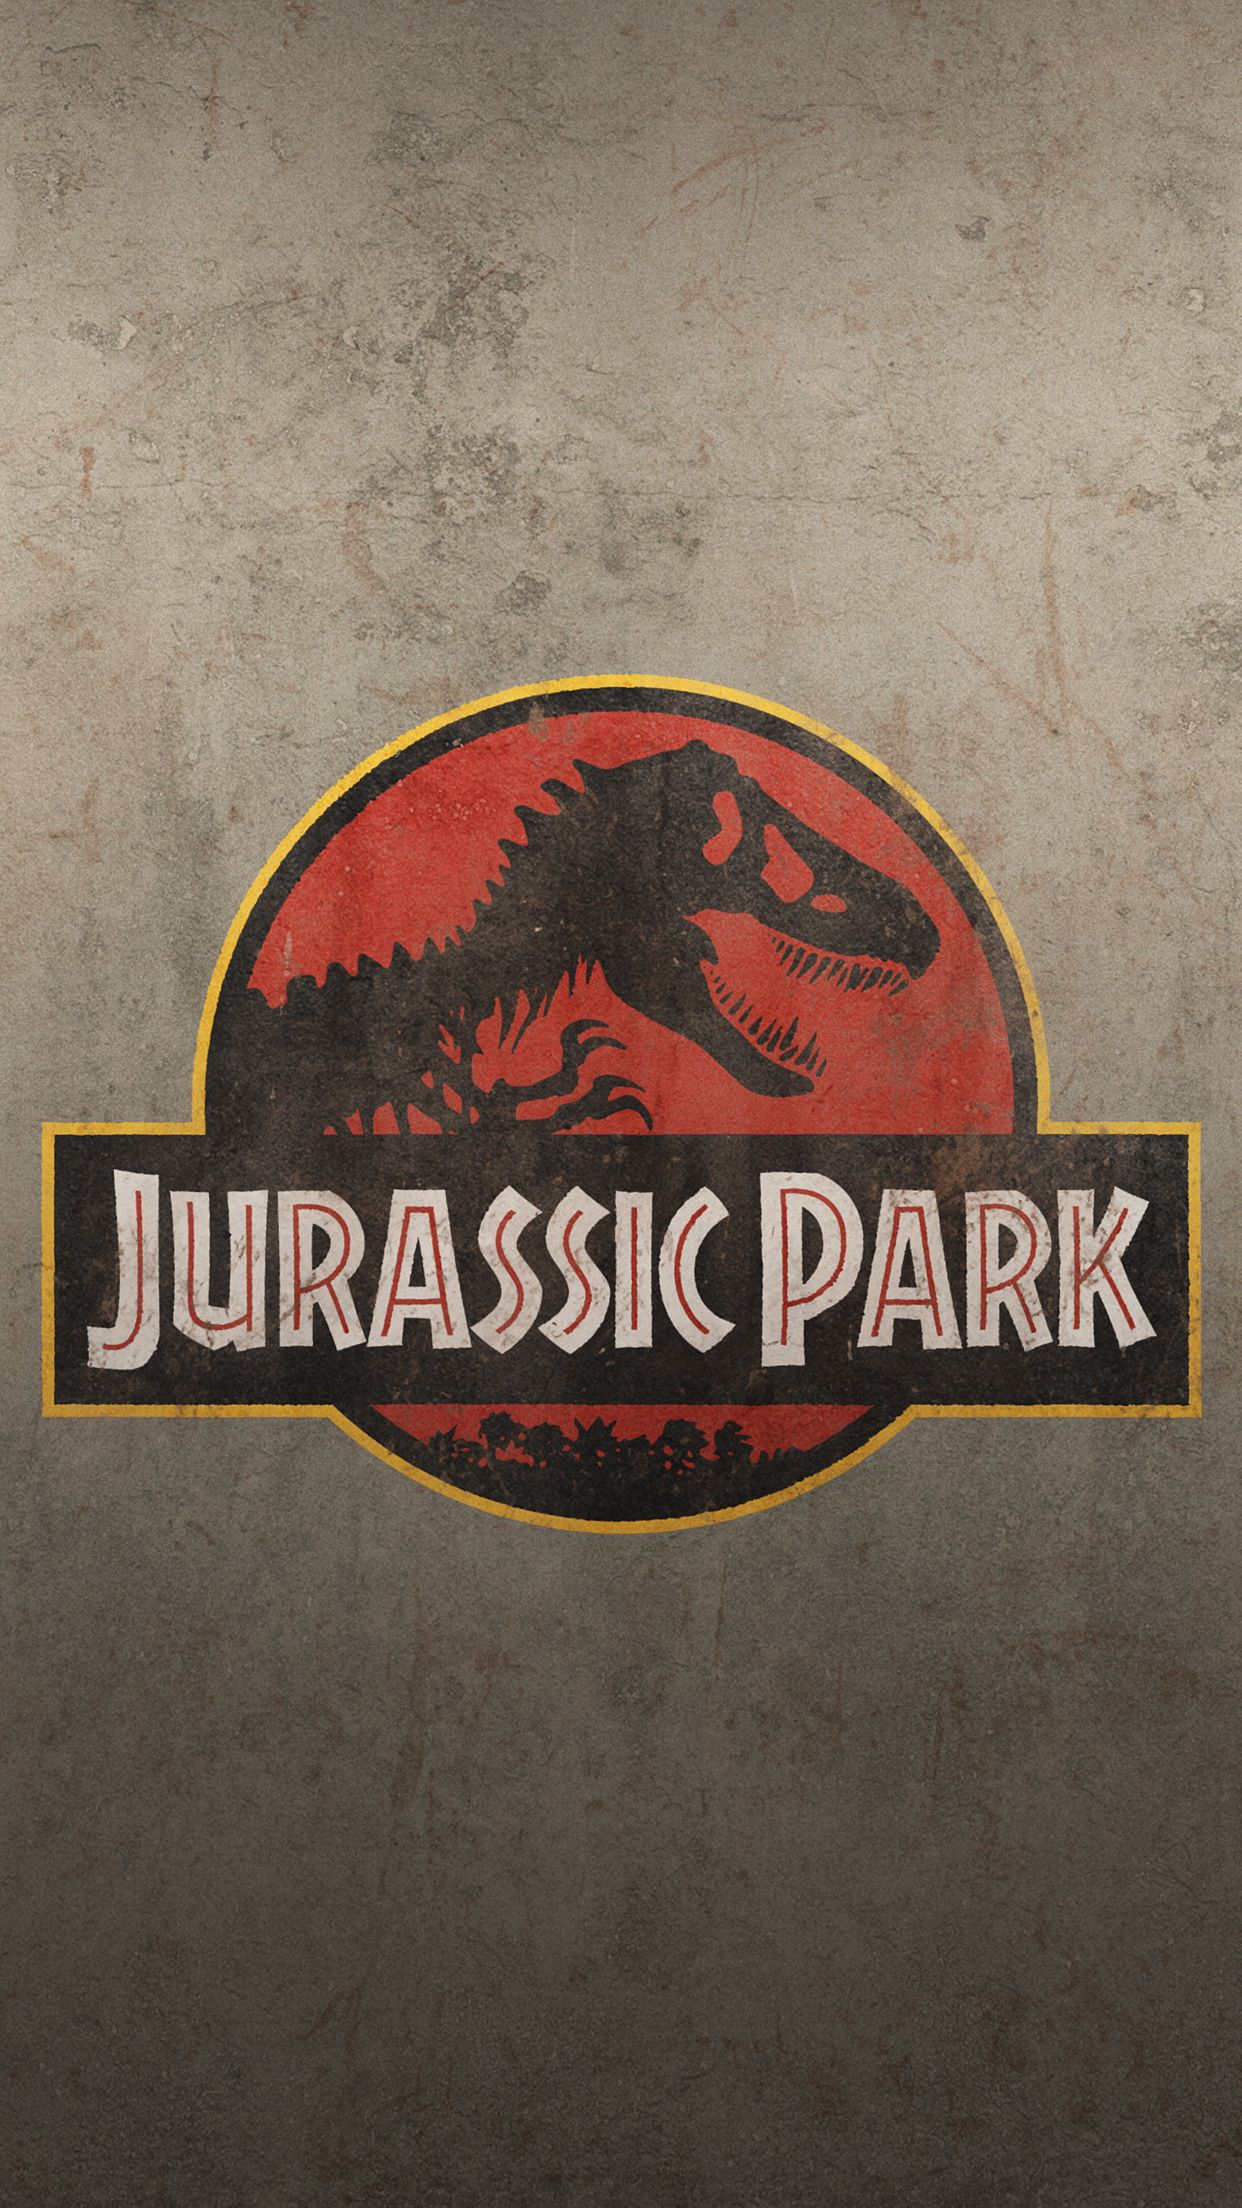 Wallpaper iphone jurassic park - Jurassic Park Iphone Wallpapers Google Search Backgrounds Patterns More Pinterest Jurassic Park Wallpaper And Phone